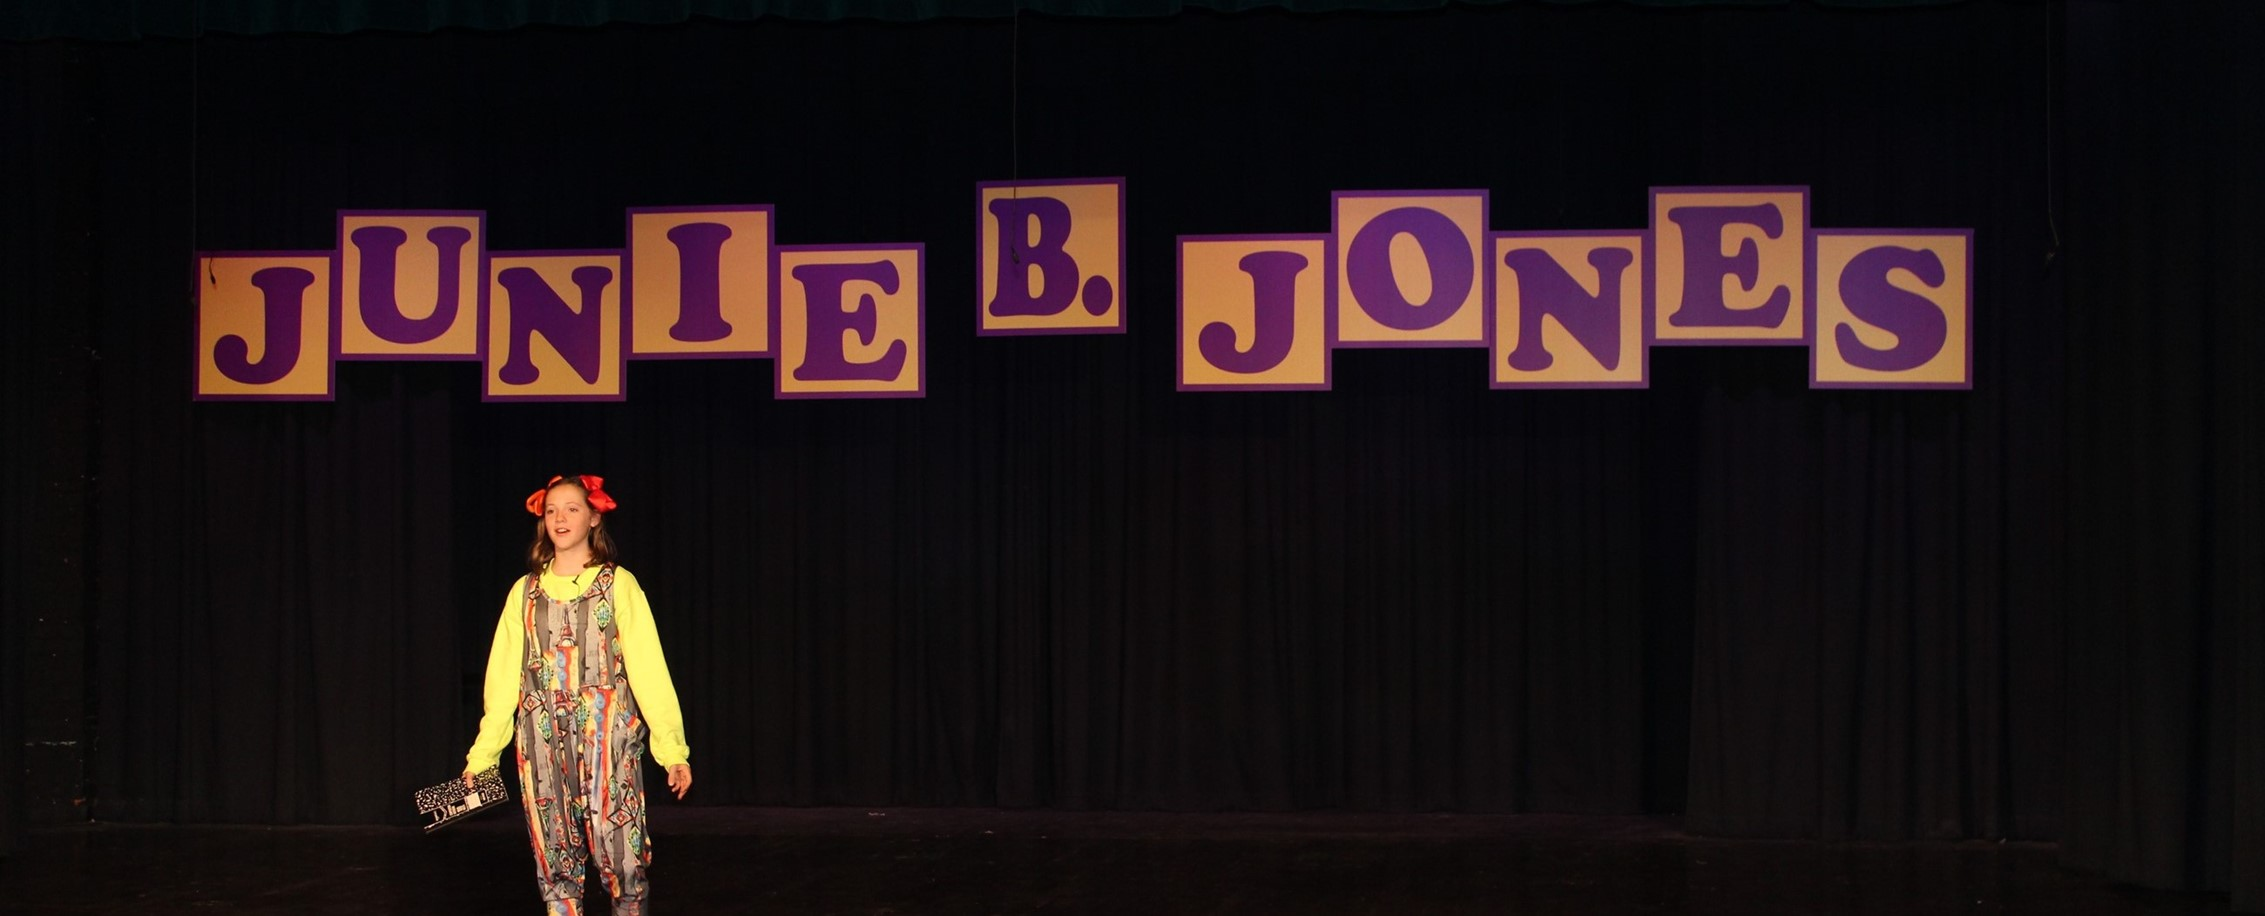 CMS Musical: Junie B. Jones